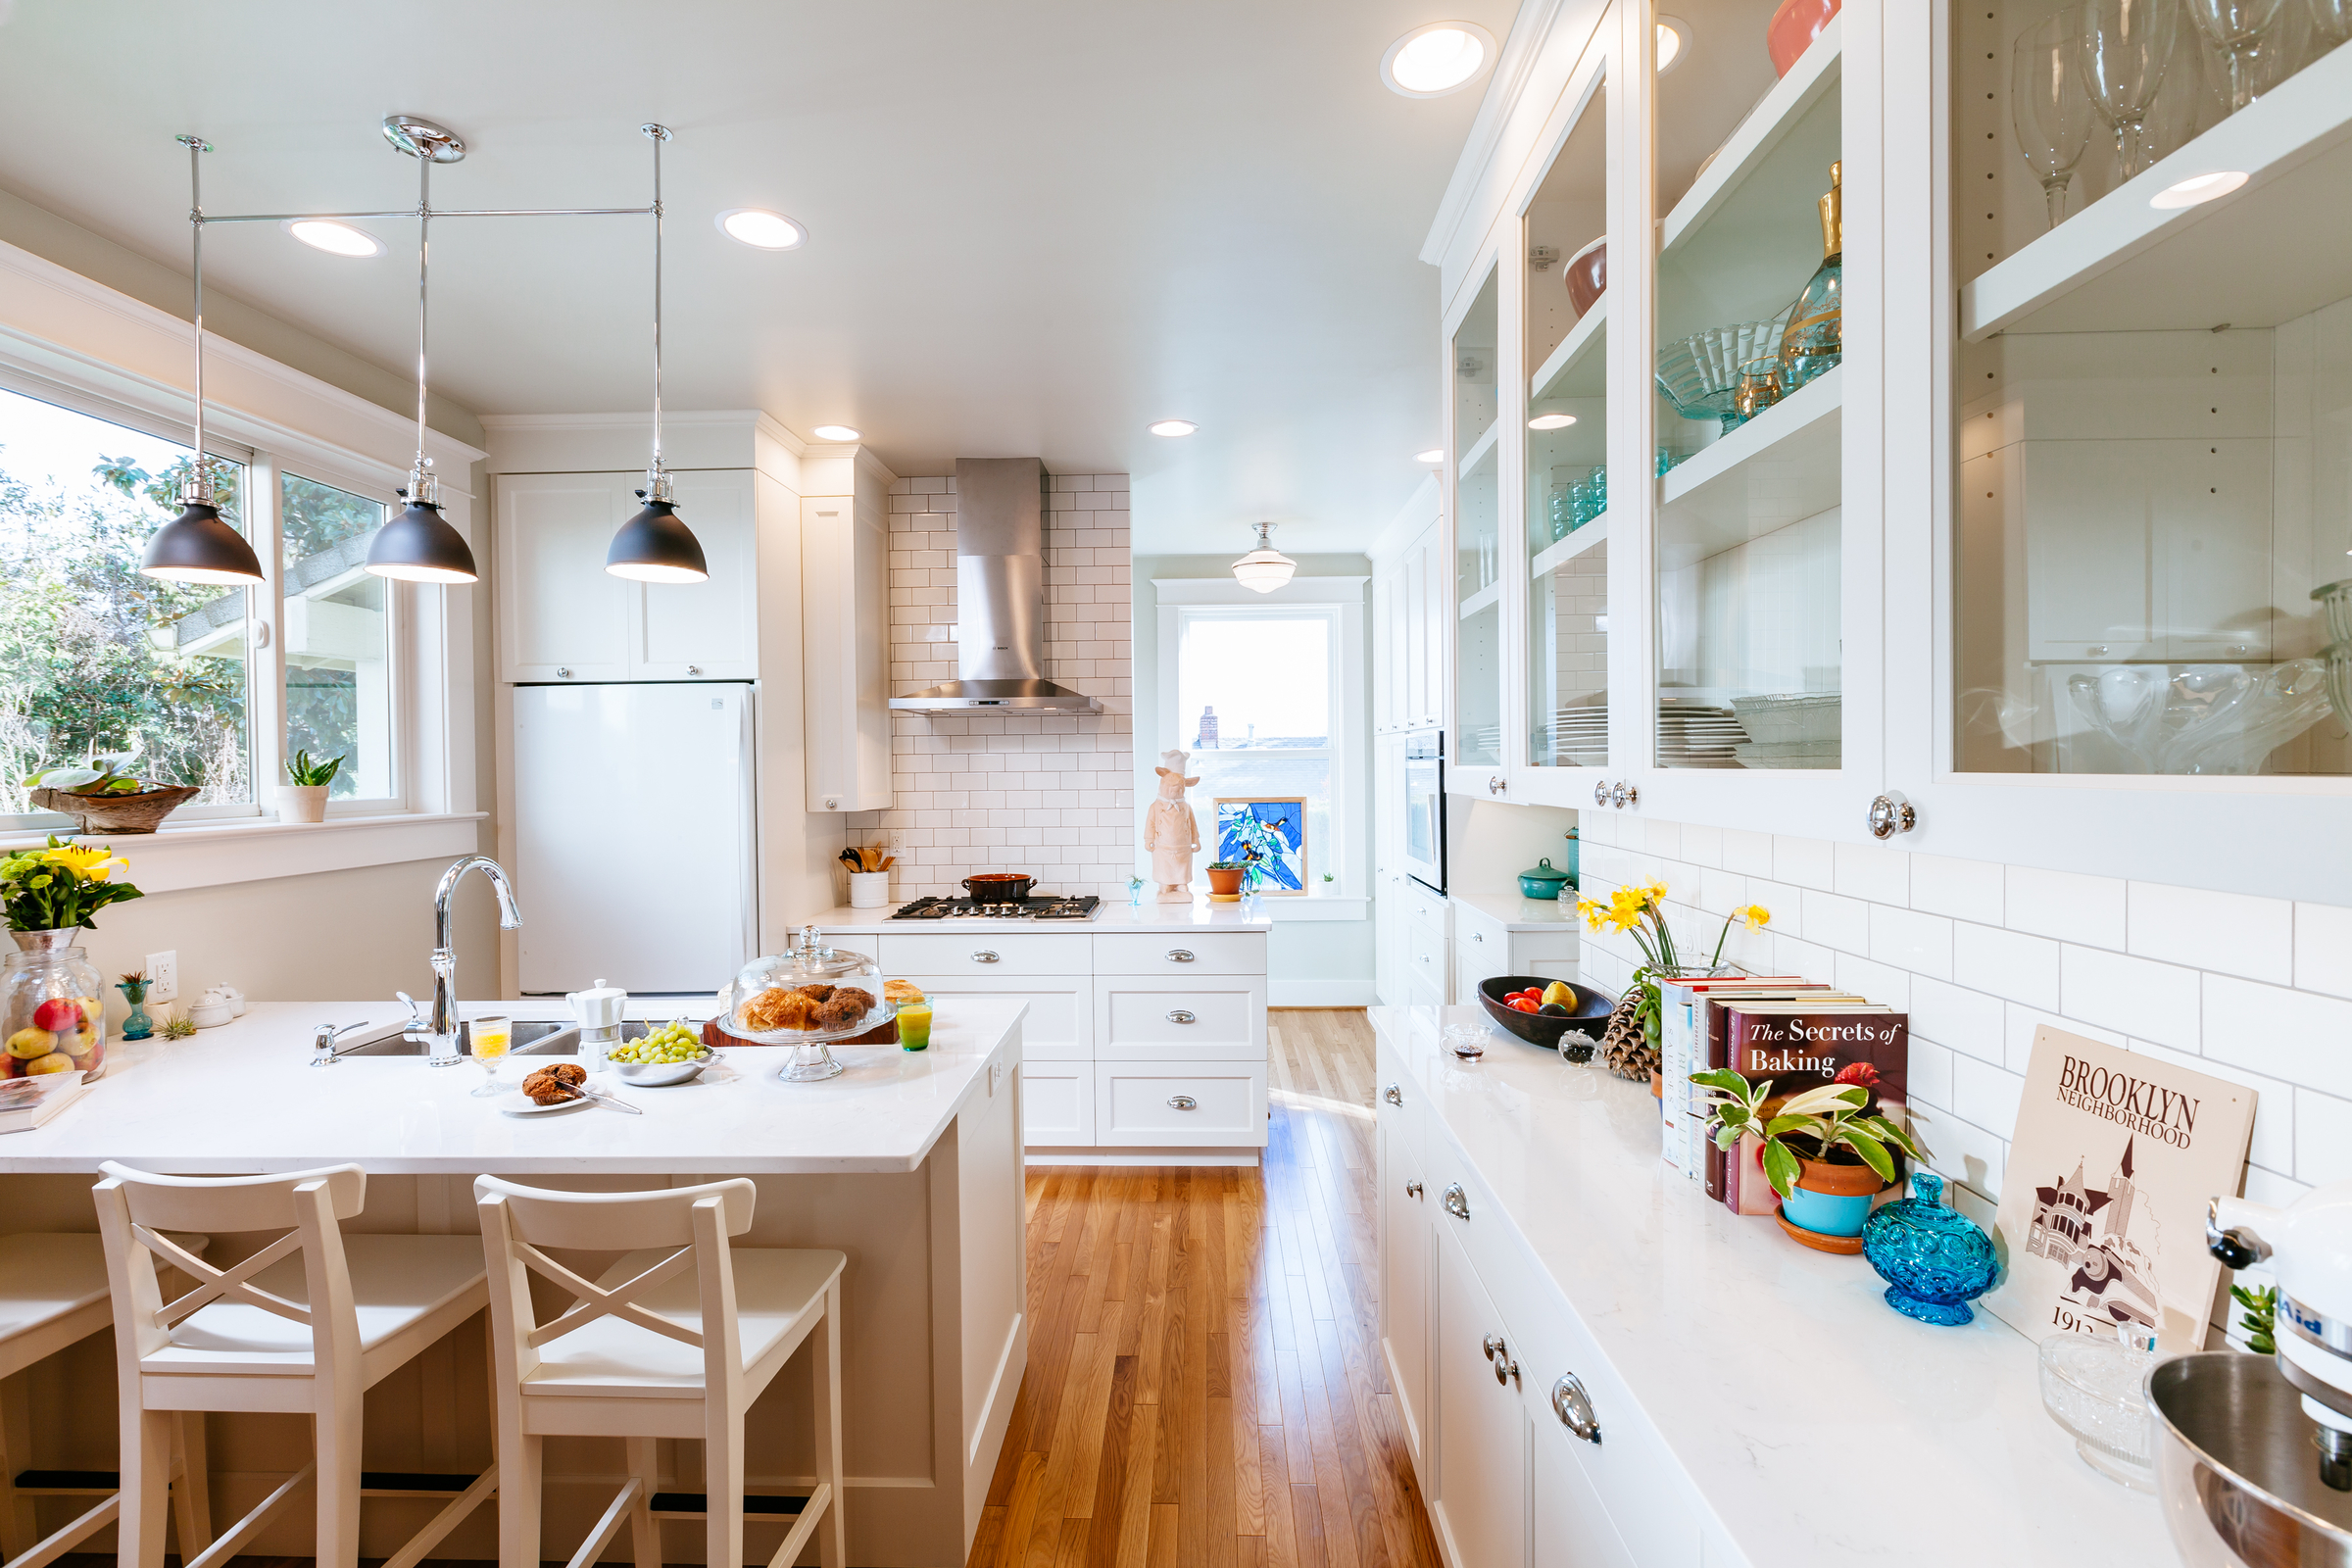 Brooklyn Remodel |  click  to view more photos